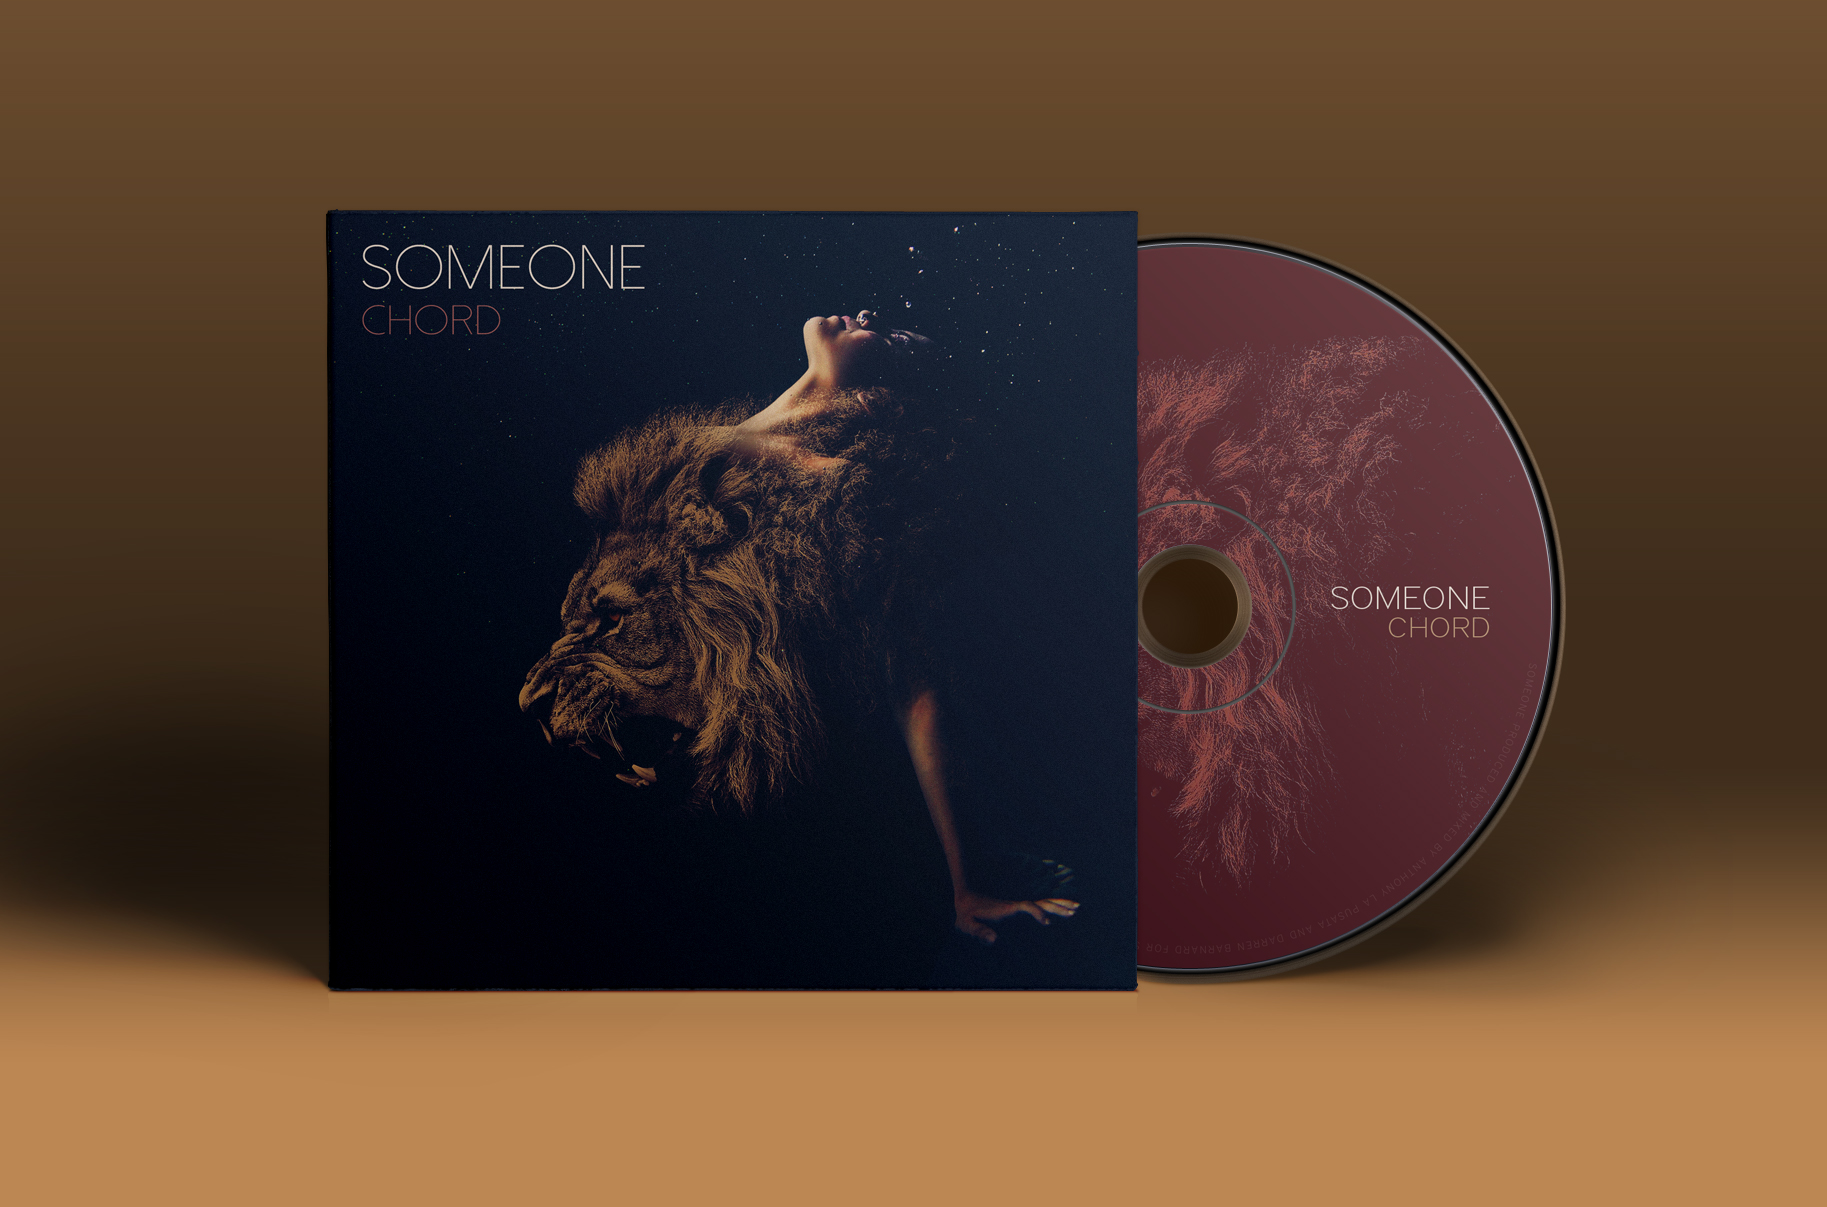 Someone CD Cover Artwork & Packaging